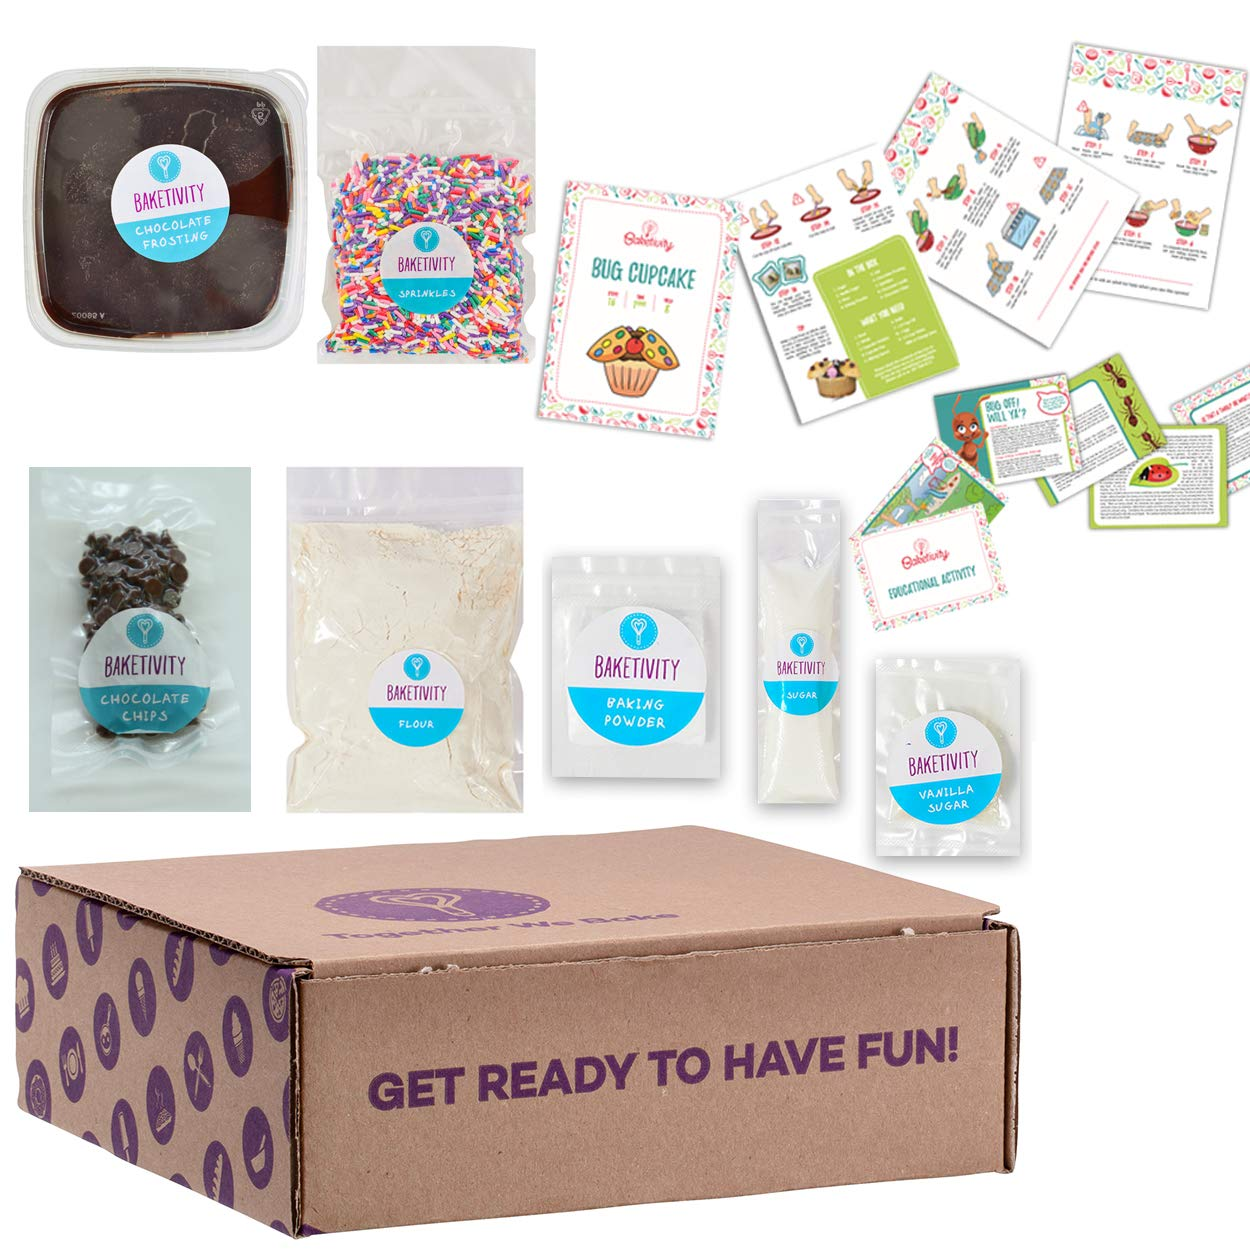 BAKETIVITY Kids Baking DIY Activity Kit - Bake Delicious Bug Cupcakes With Pre-Measured Ingredients - Best Gift Idea For Boys And Girls Ages 6-12 by Baketivity